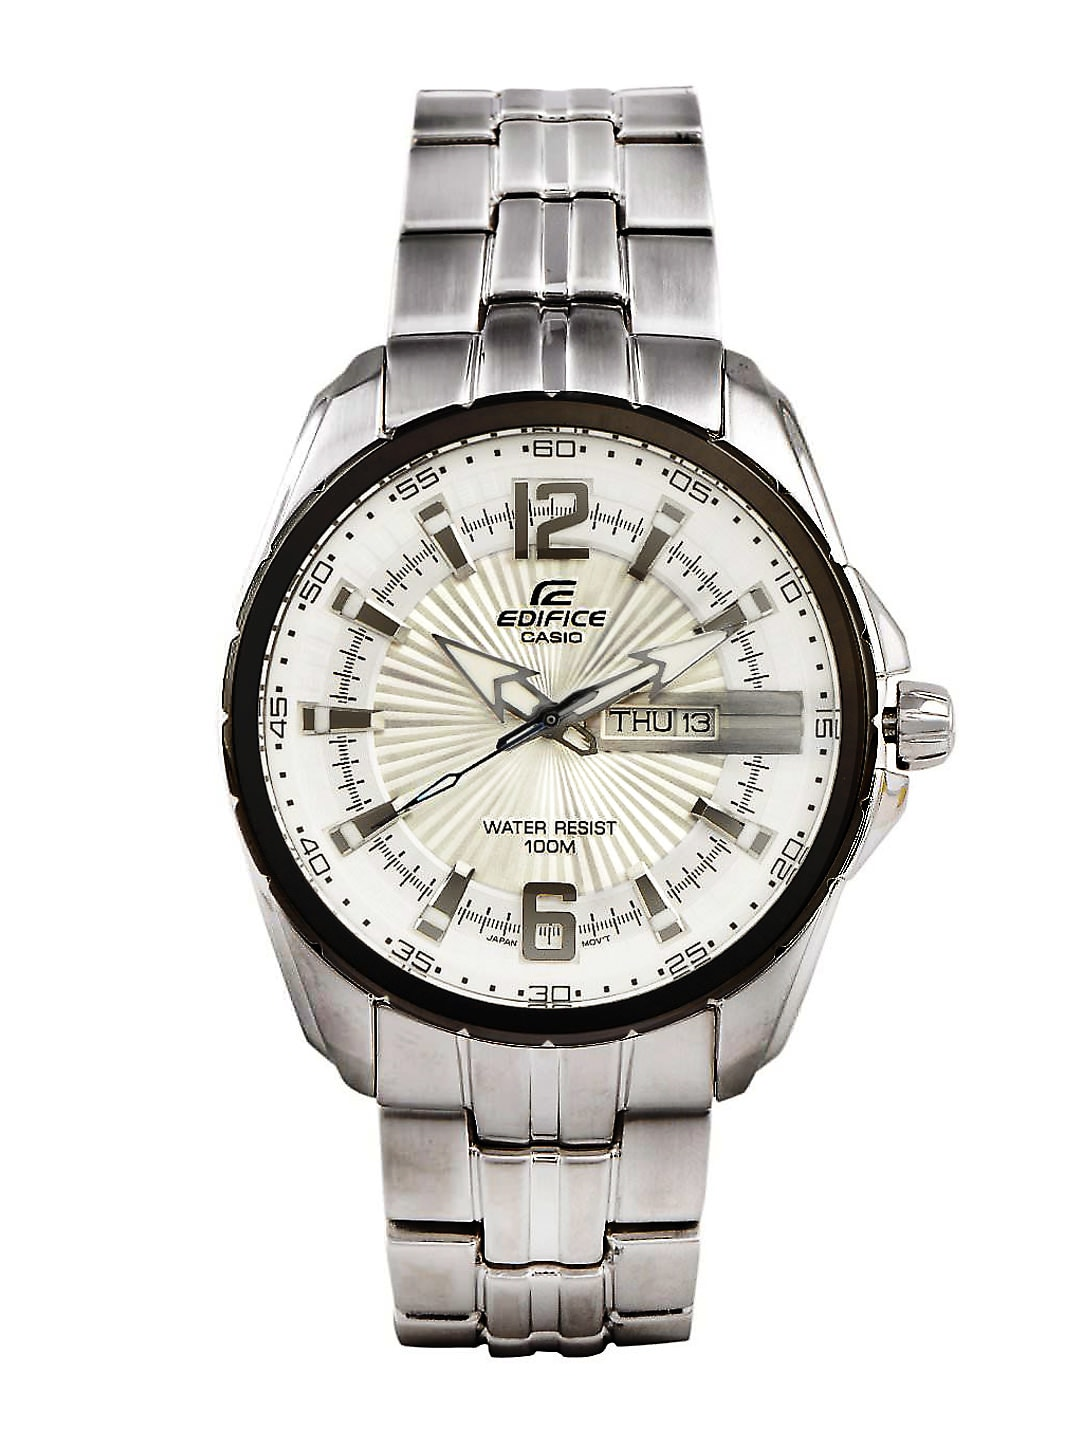 Casio Edifice Men Silver Analogue Watches (ED446) EF-131D-7AVDF